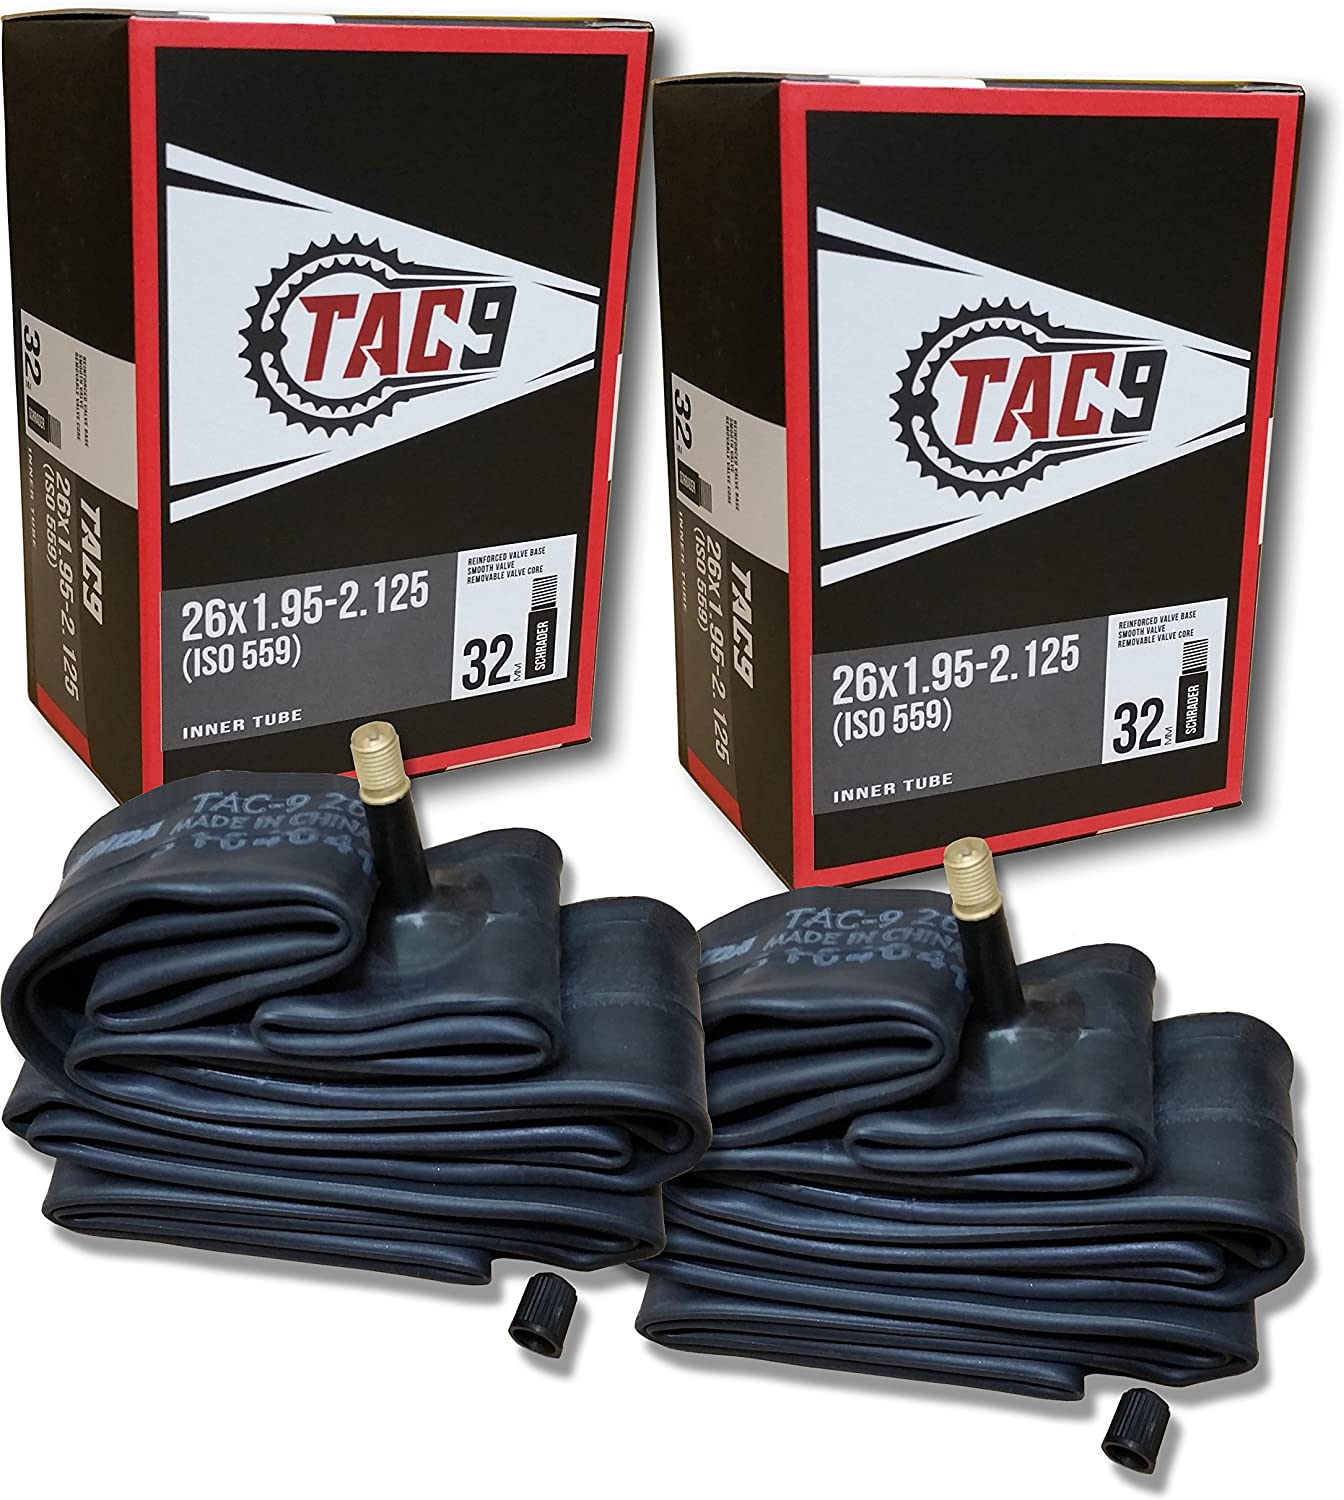 TAC 9 Tube, 26 x 1.95-2.125, Regular Schrader Valve 32mm - Bundle Options Available w/Rim Strips and Tire Levers